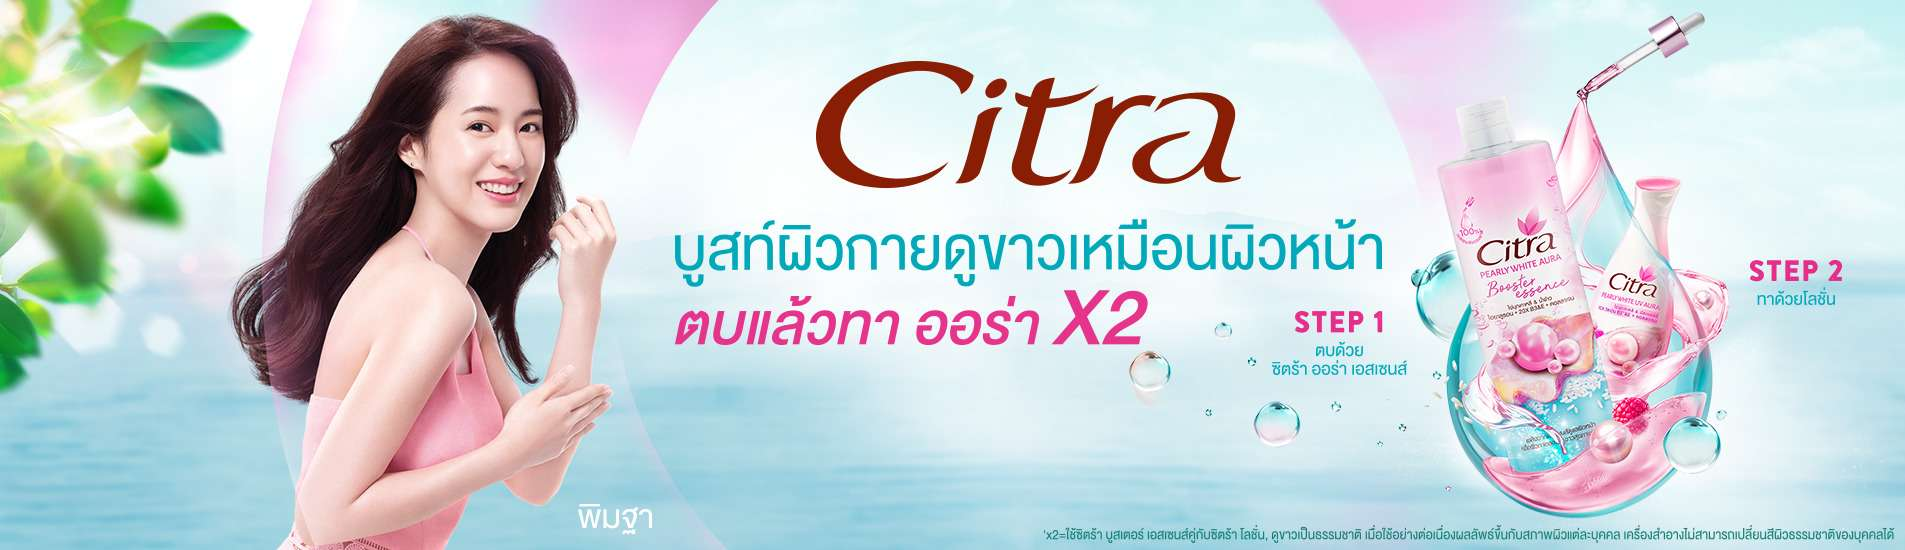 Citra Website Images